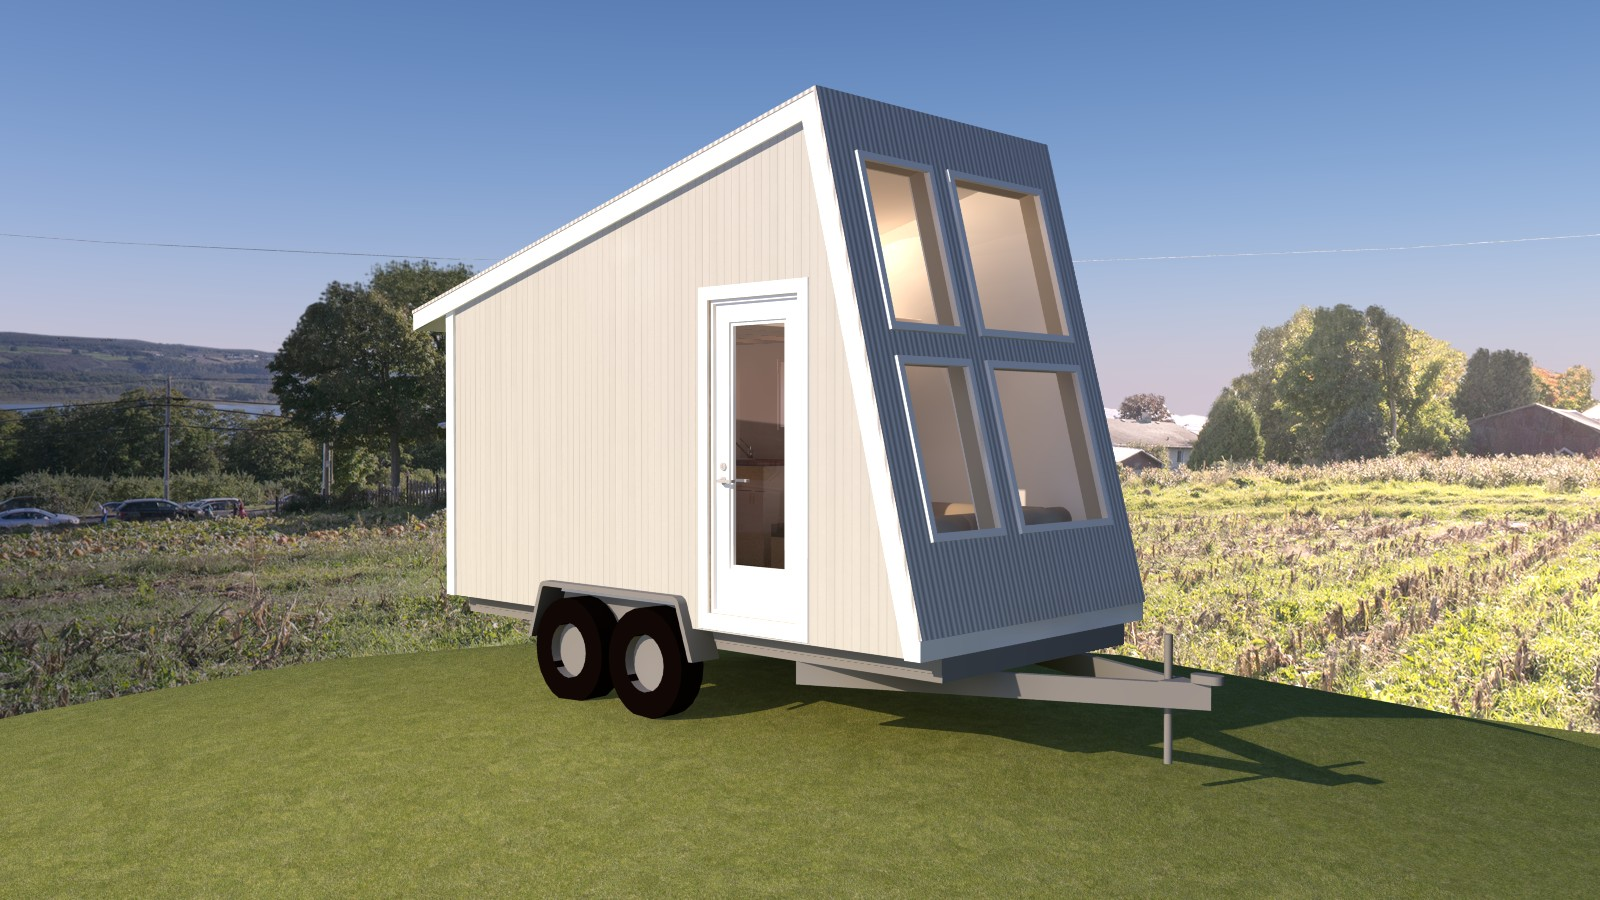 18 tiny house designs for Tiny house blueprint maker